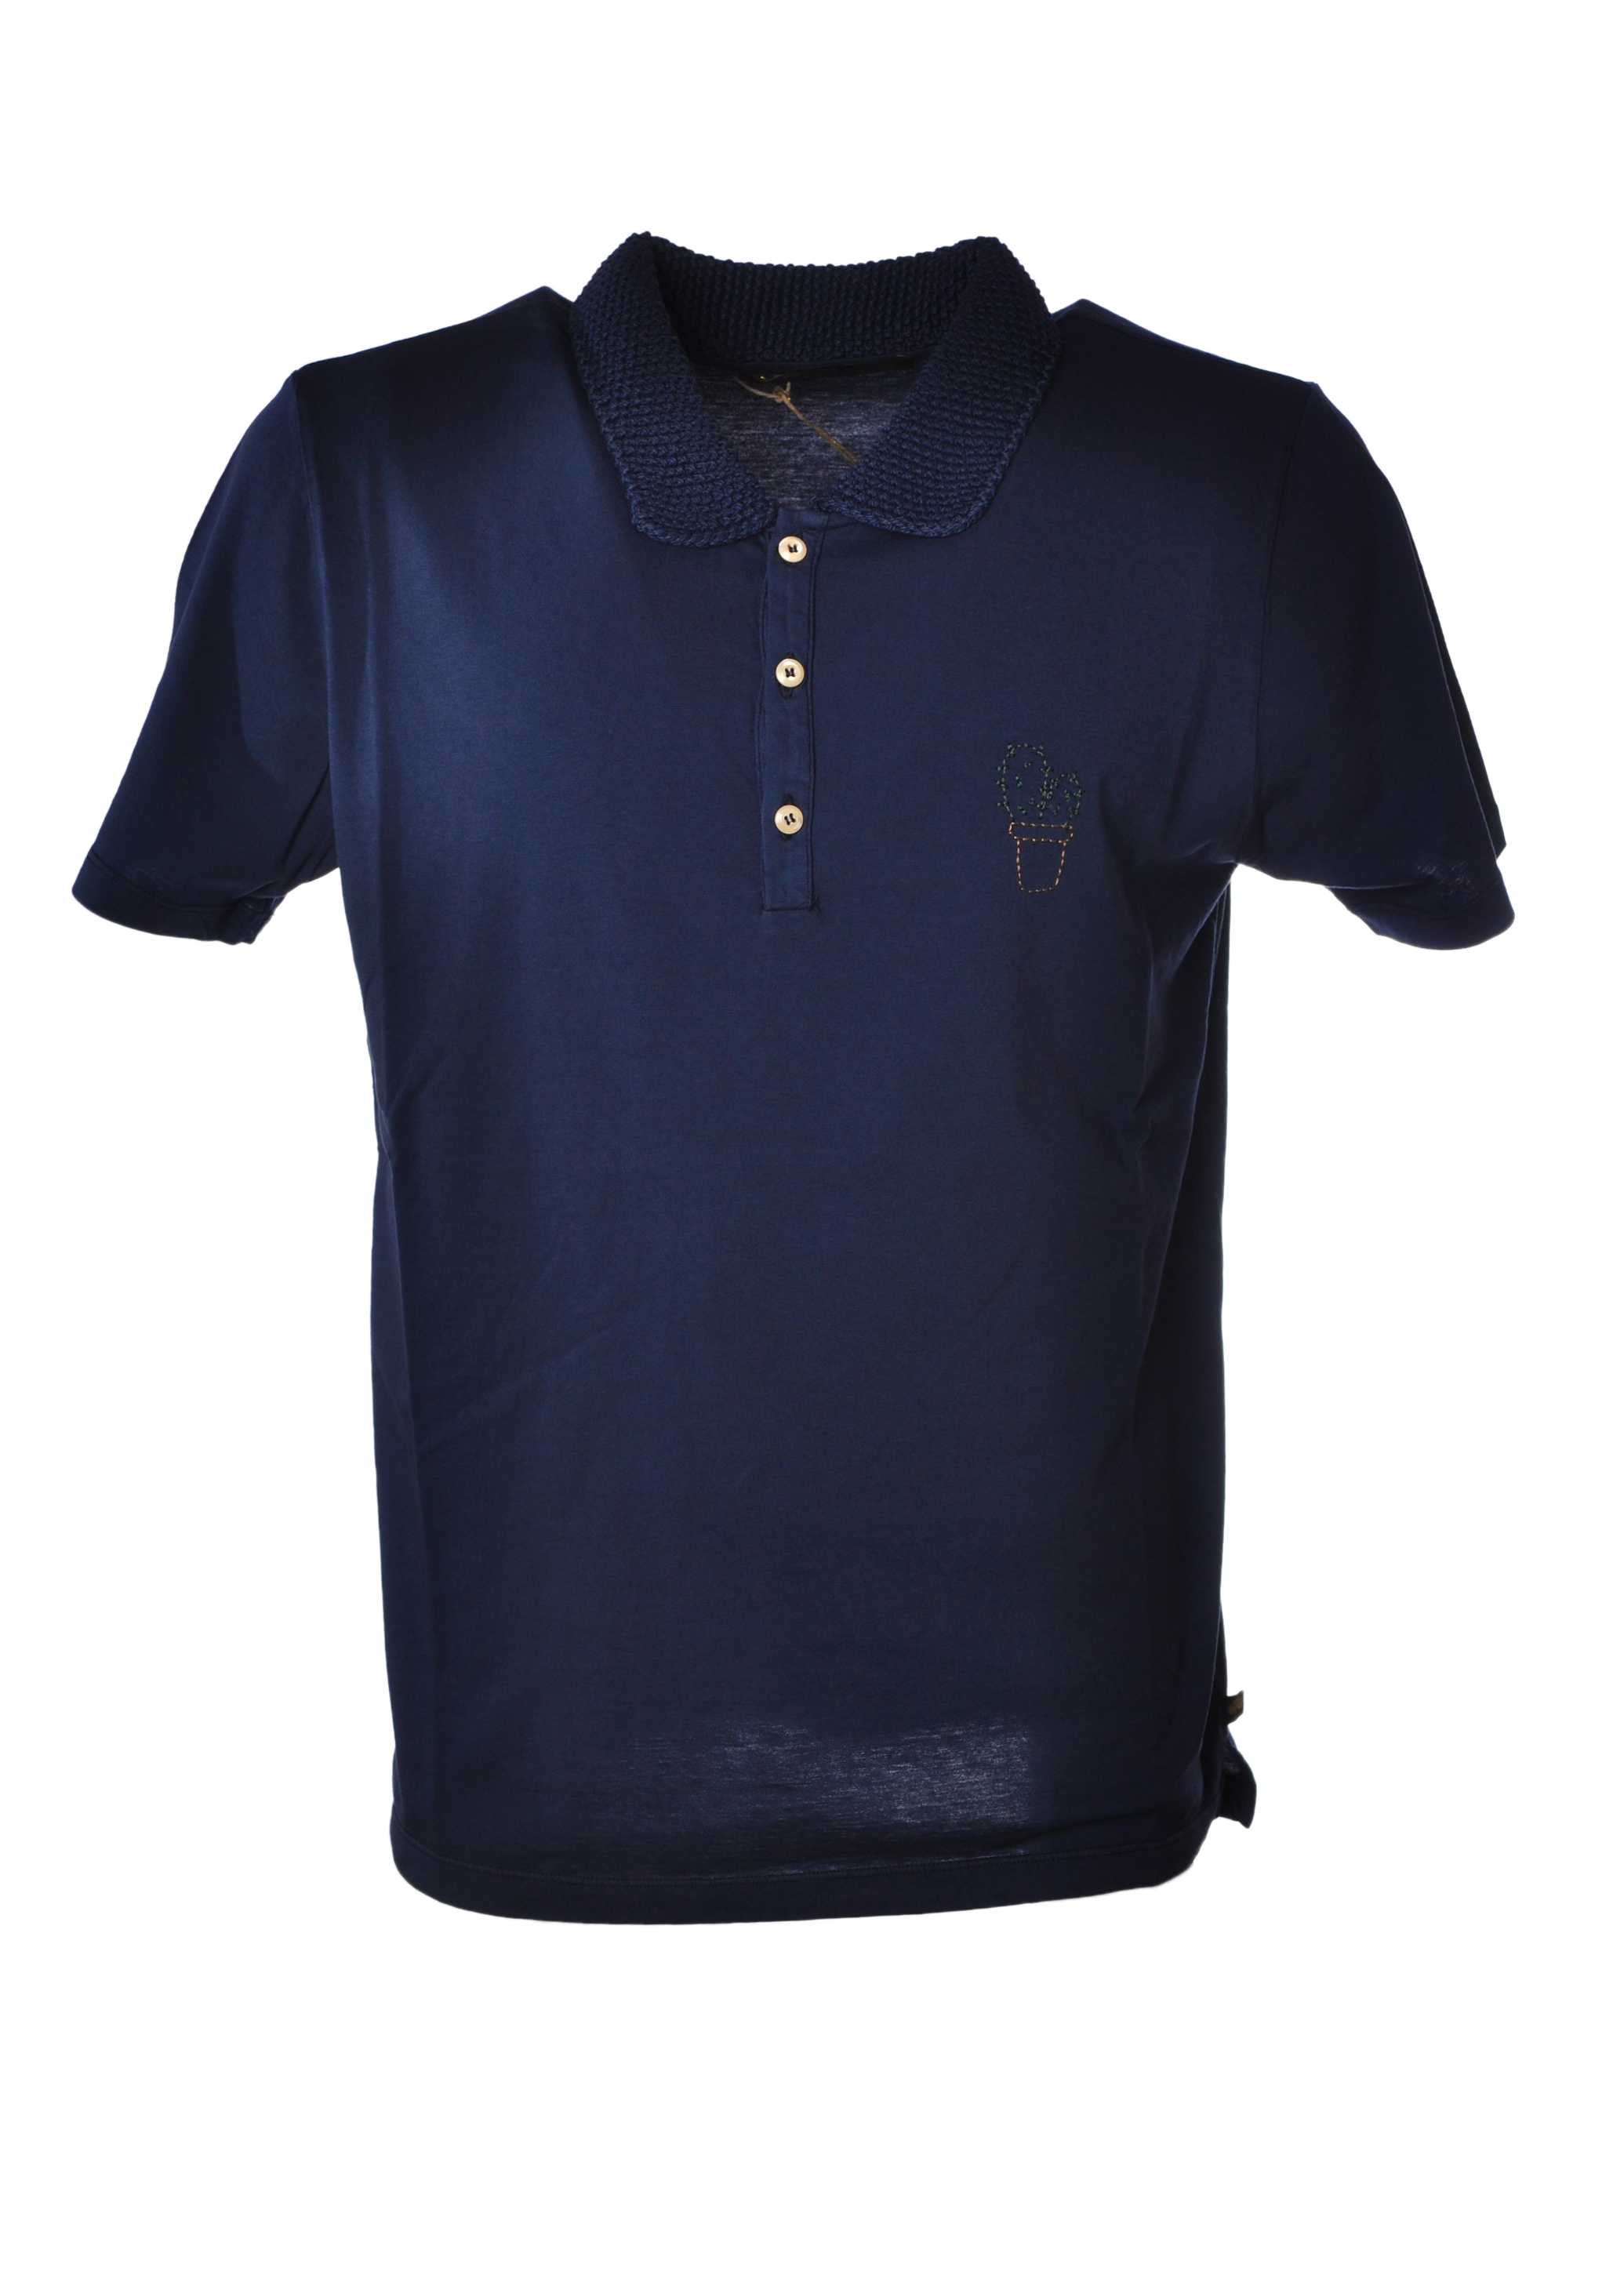 polo singles & personals We've been around young singles and not-so-young singles,  about to read is the 10 things you should know about dating in  up shirt or polo.